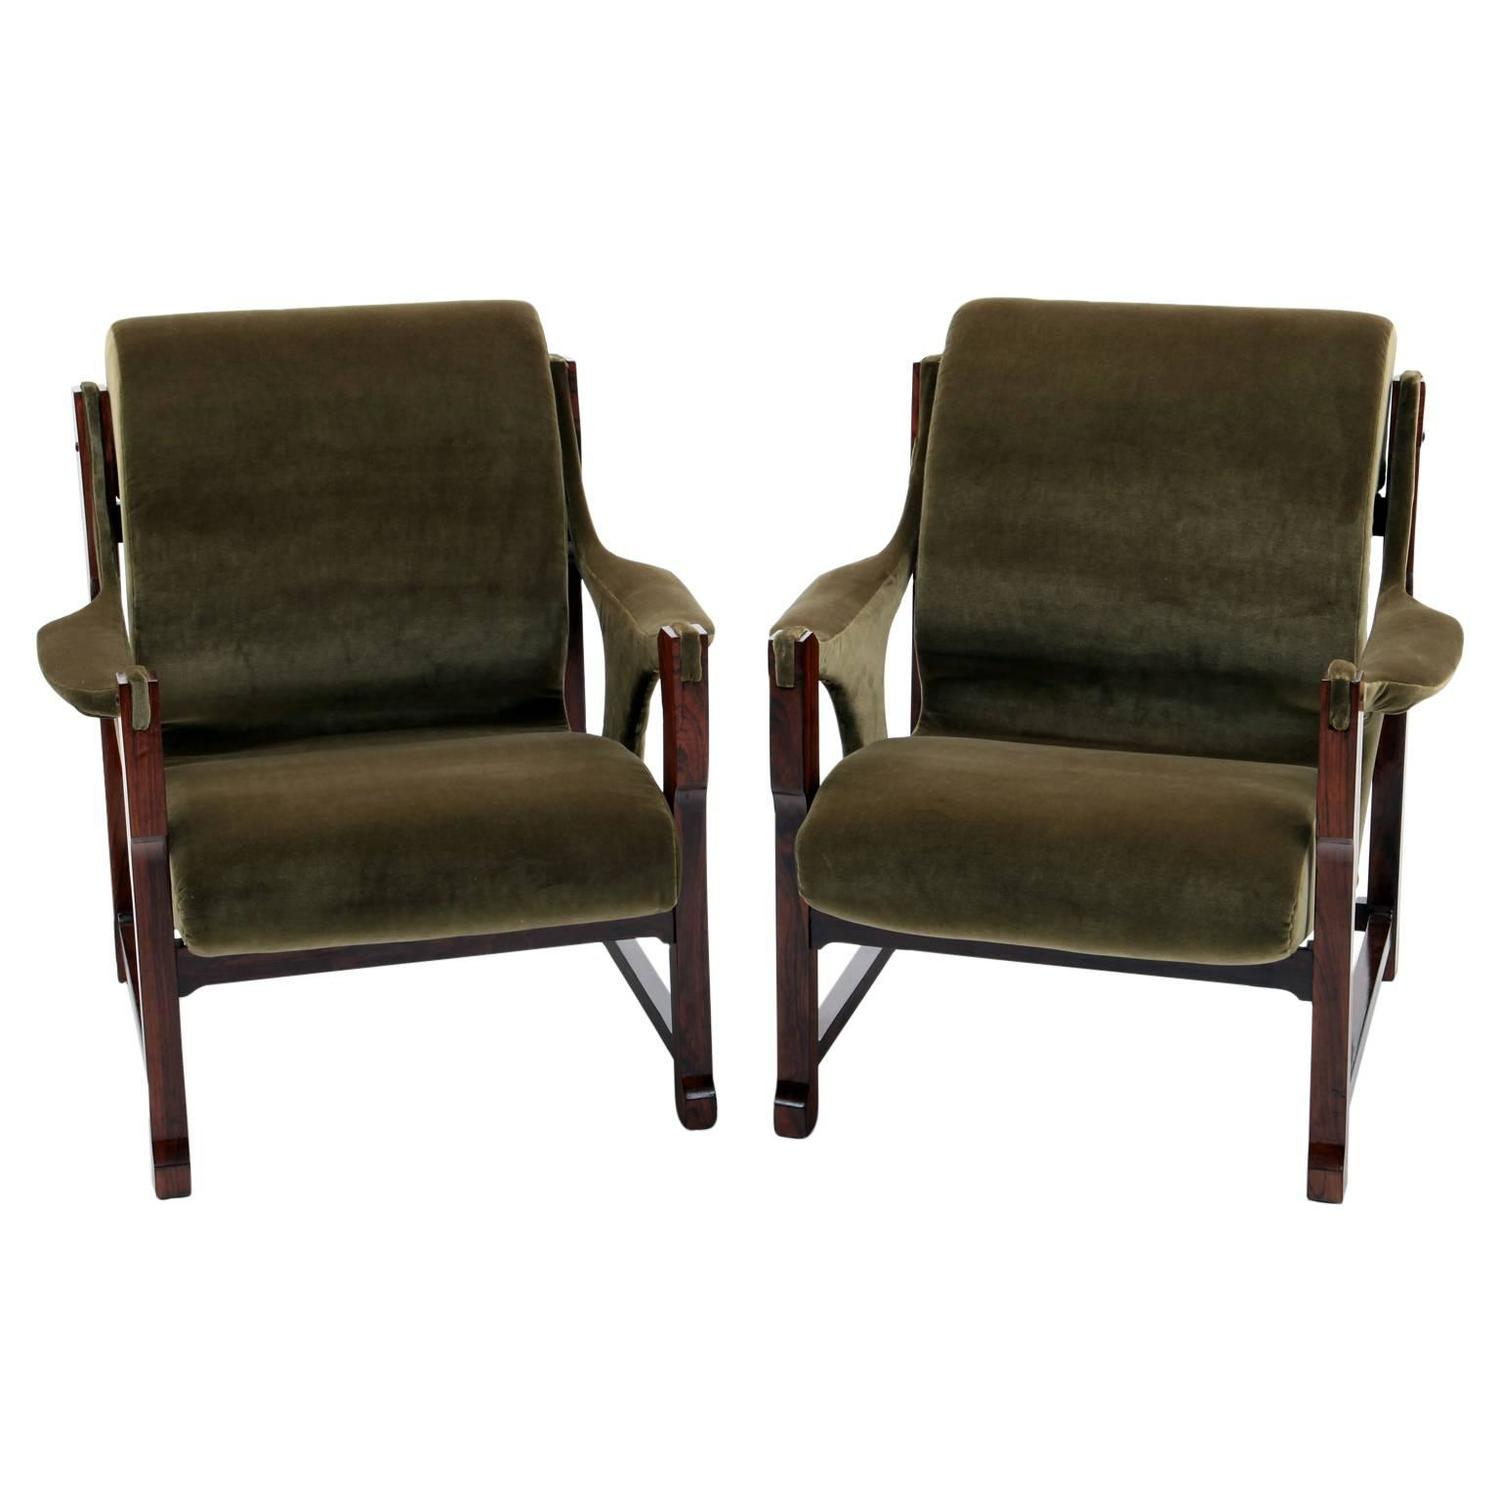 Lounge chairs scandinavia mid 20th century at 1stdibs for Mid 20th century furniture